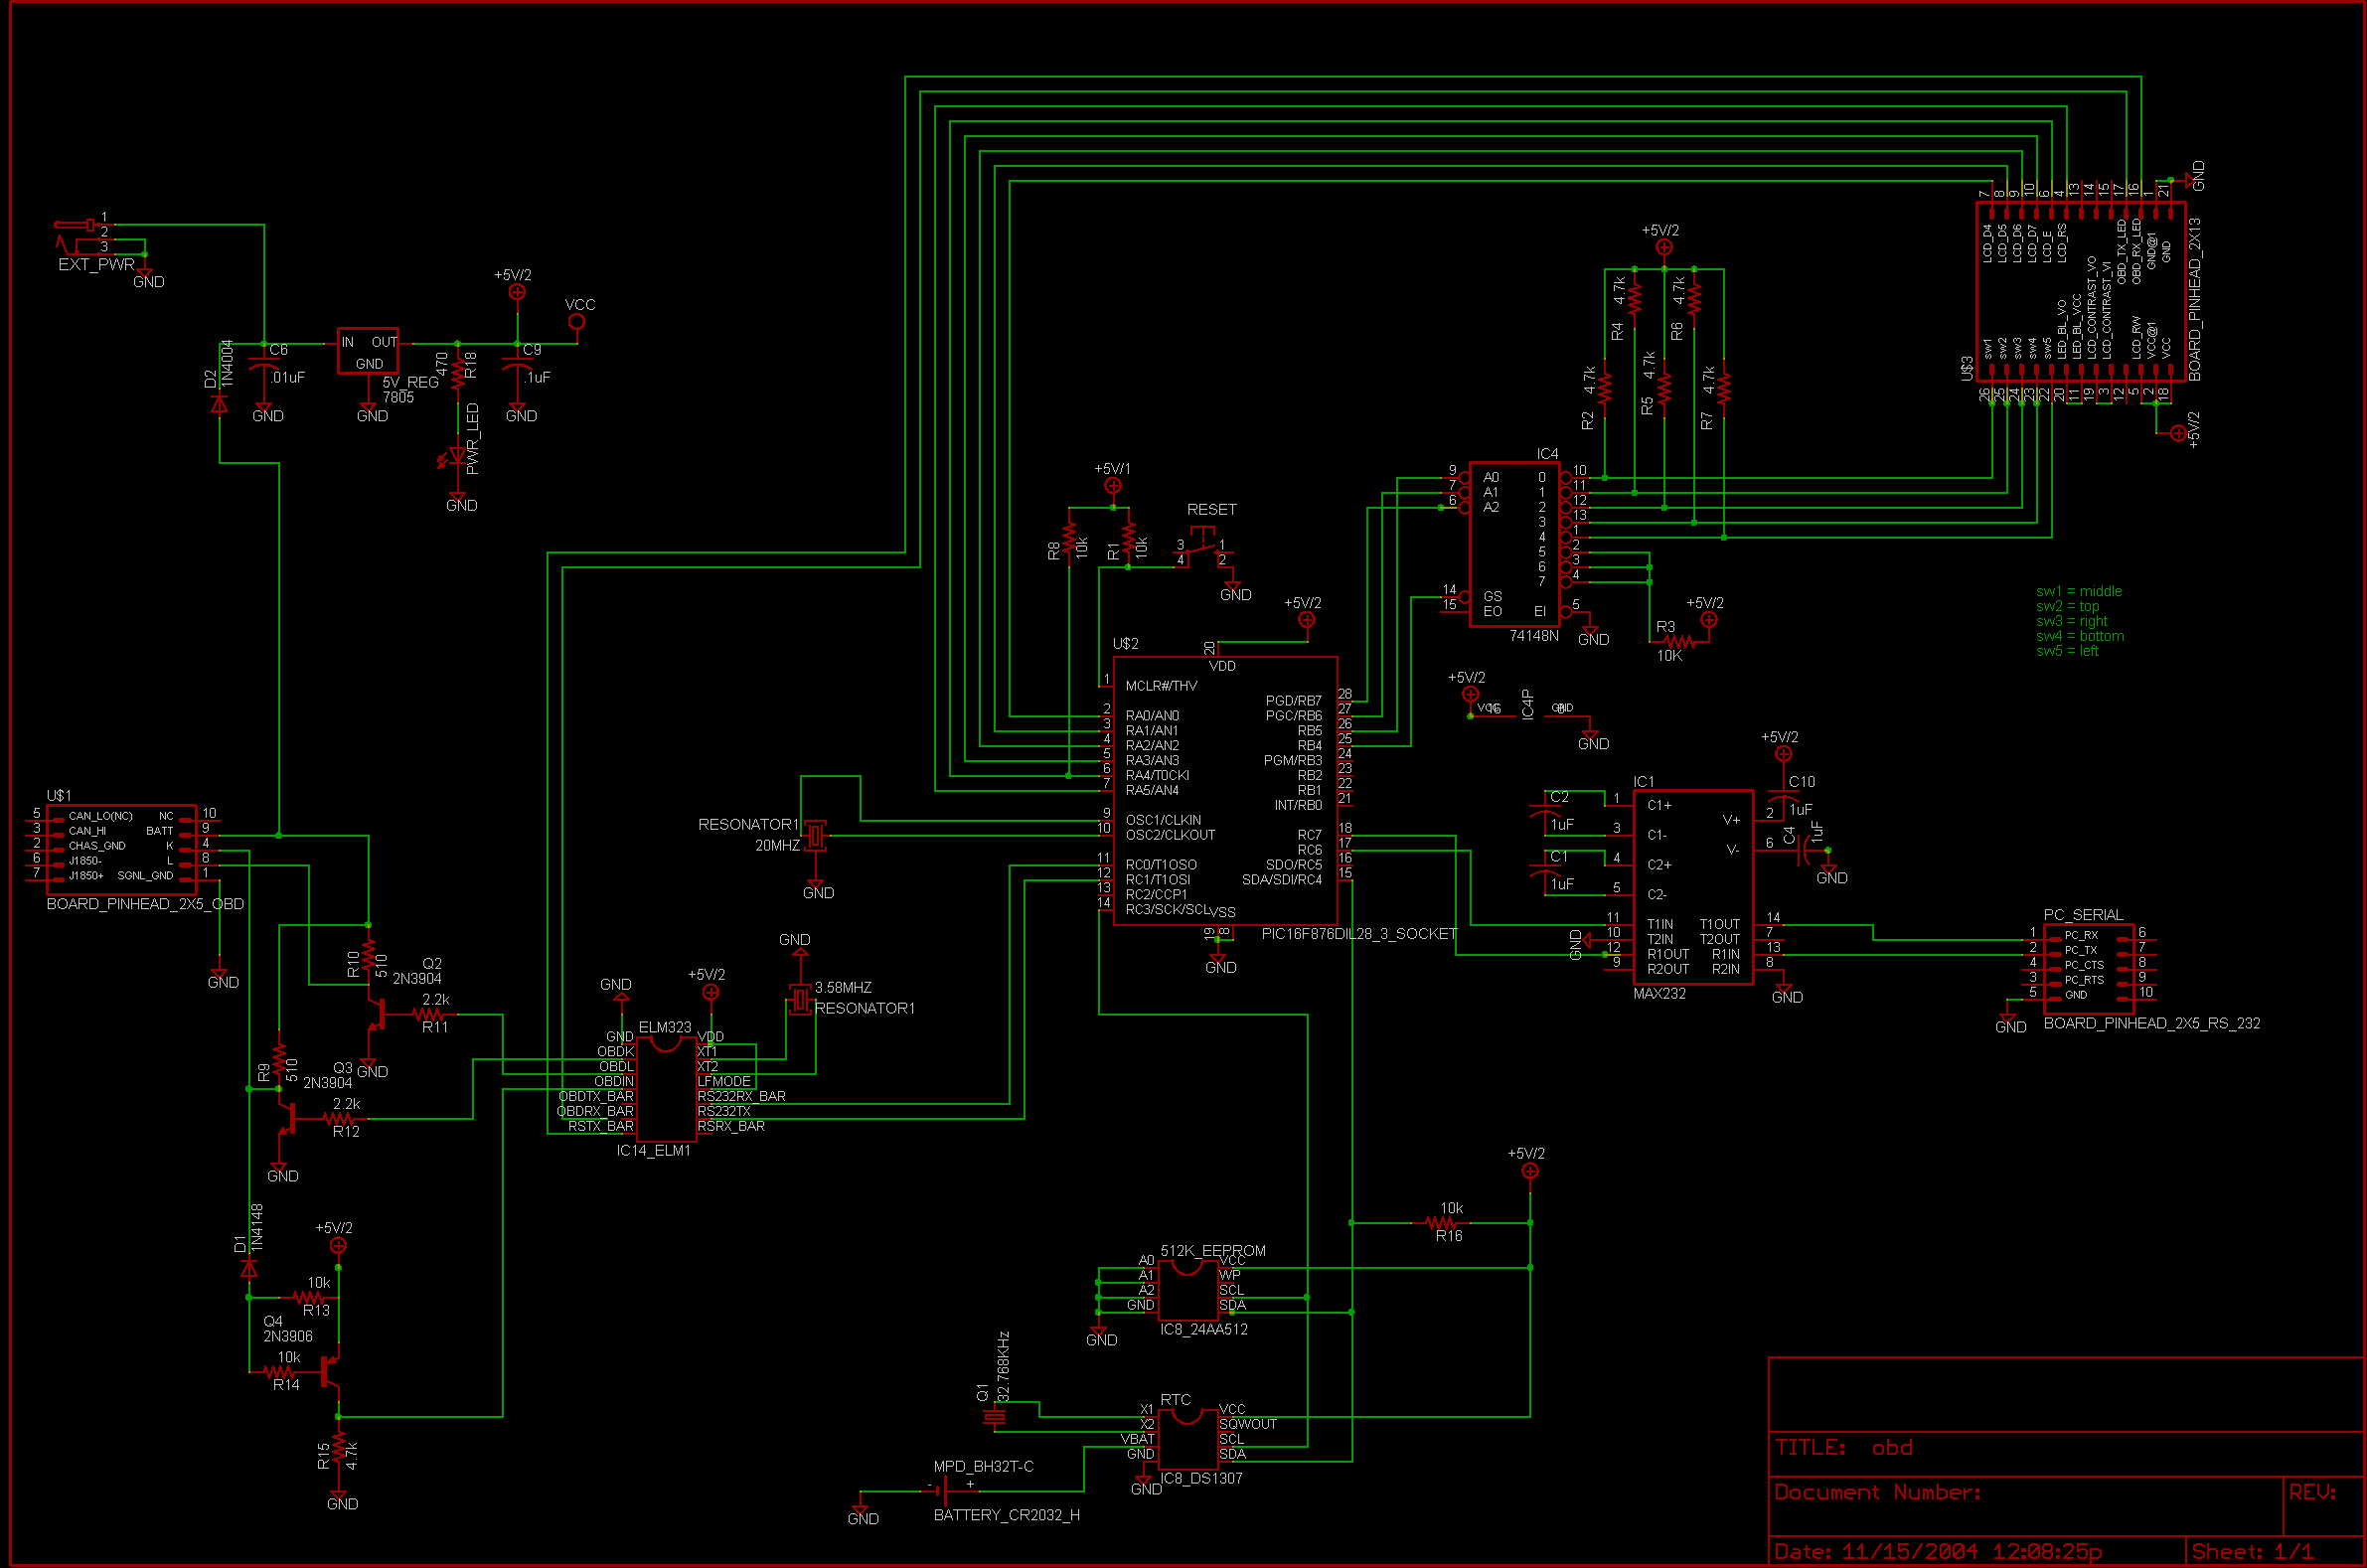 obd schematic elec intro website the obd cable for adapter is it the right adapter for my car connecting and testing schematic out mc33290 and mc33390 project overview >